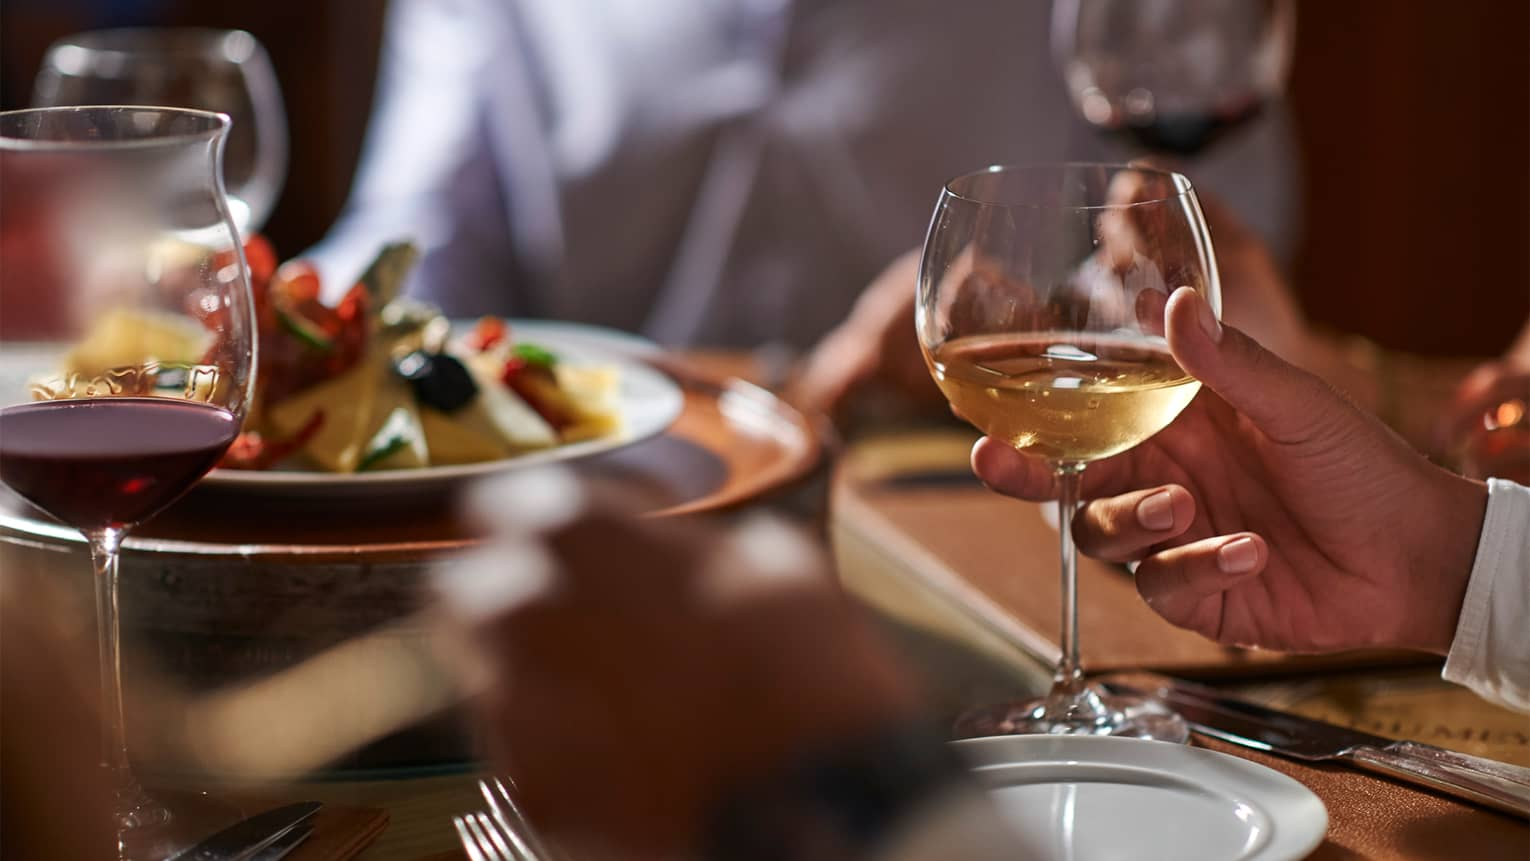 Close-up of man's hand holding a glass of white wine at formal dinner table